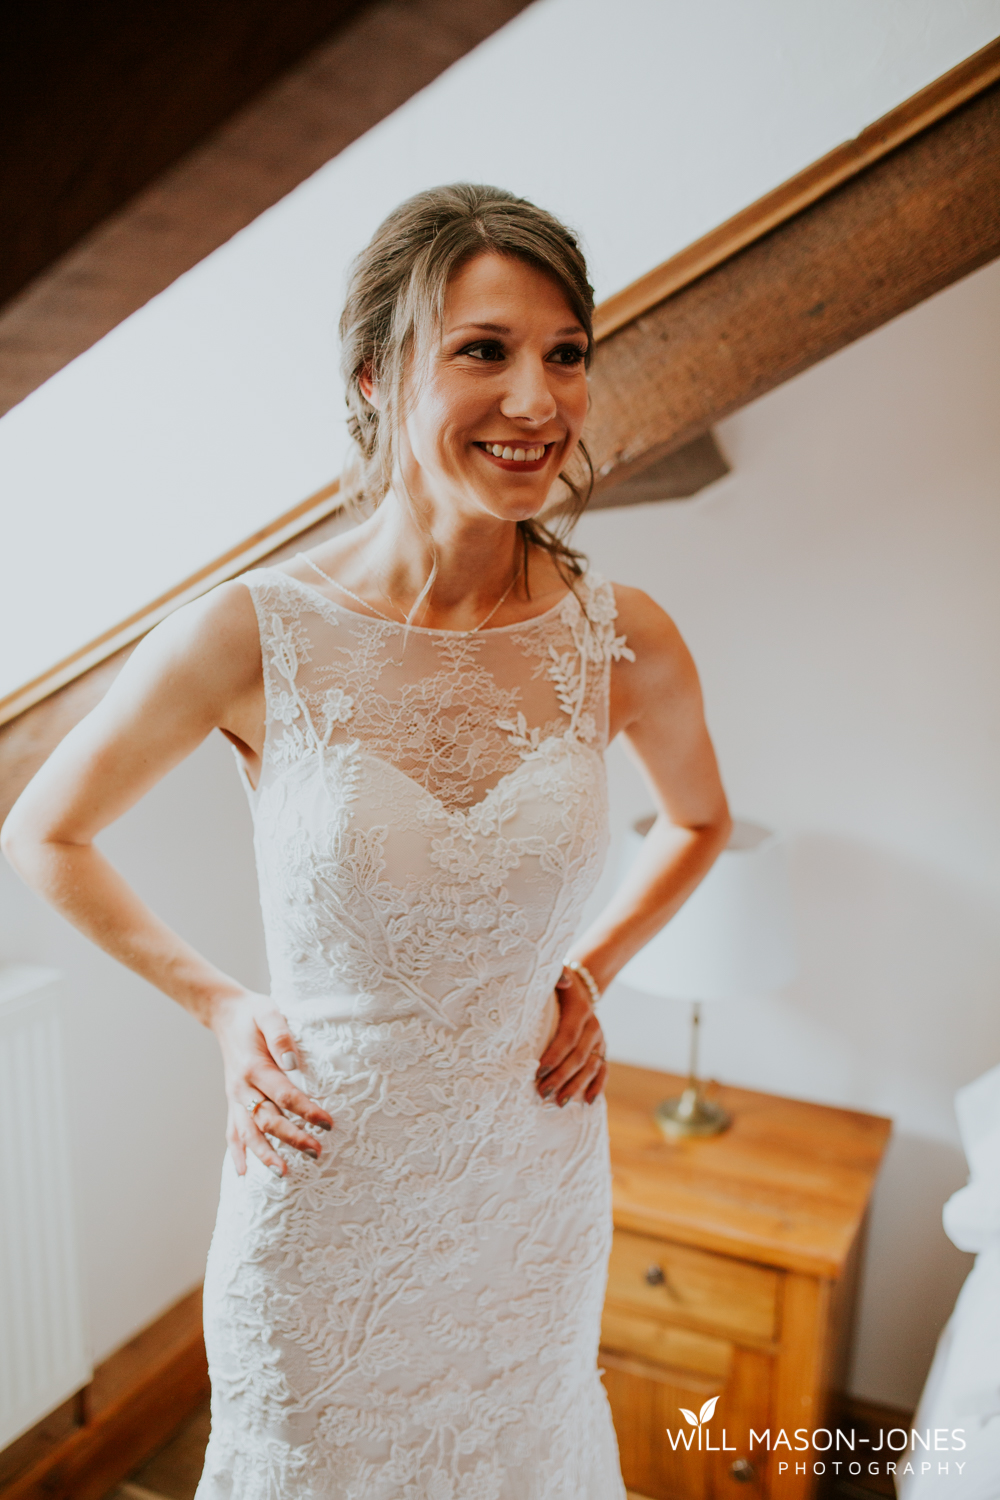 The king arthur hotel swansea wedding bridal preparations photography cottage bridesmaids